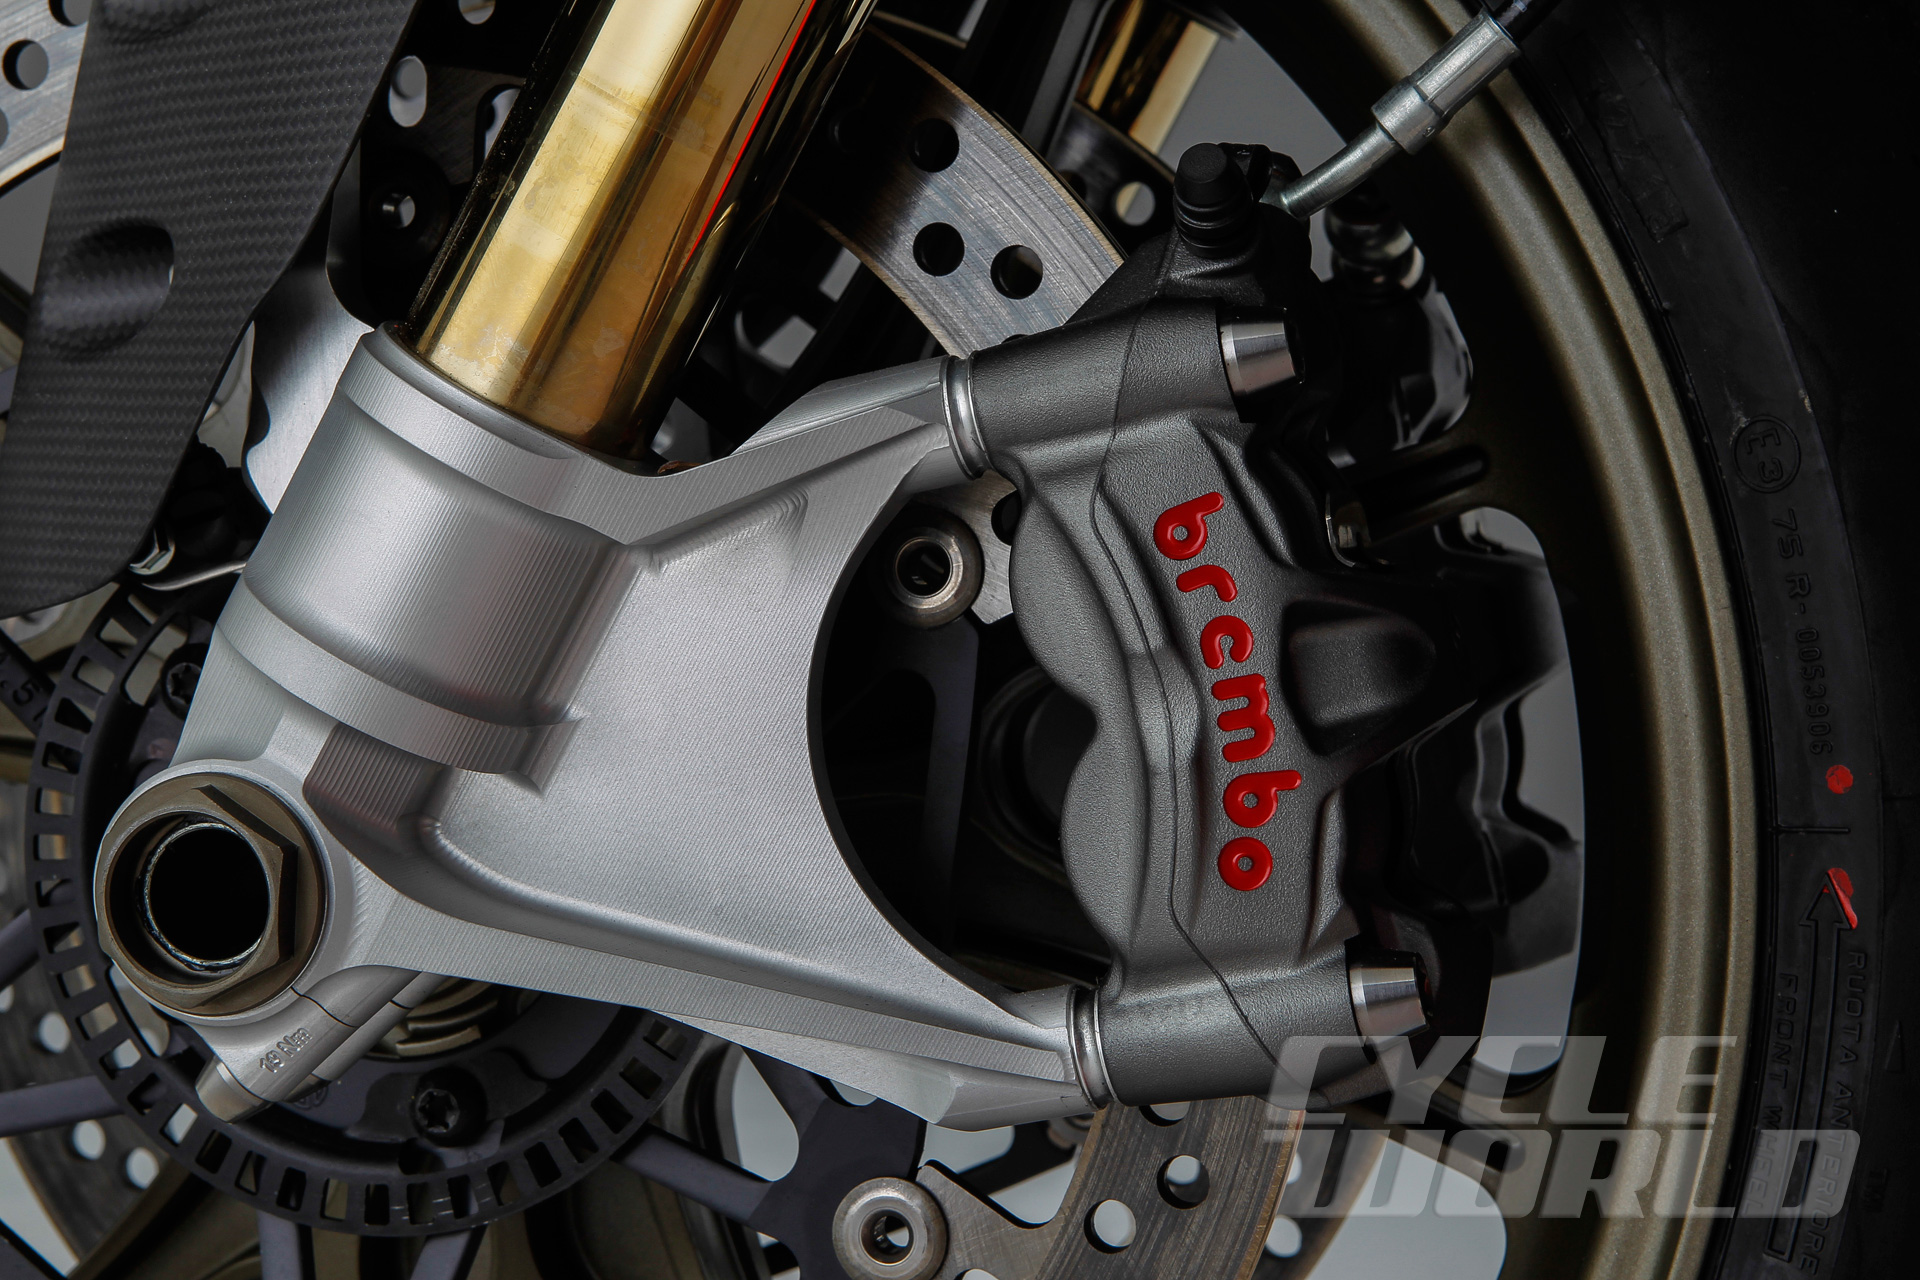 Ducati-Superleggera-detail-366.jpg